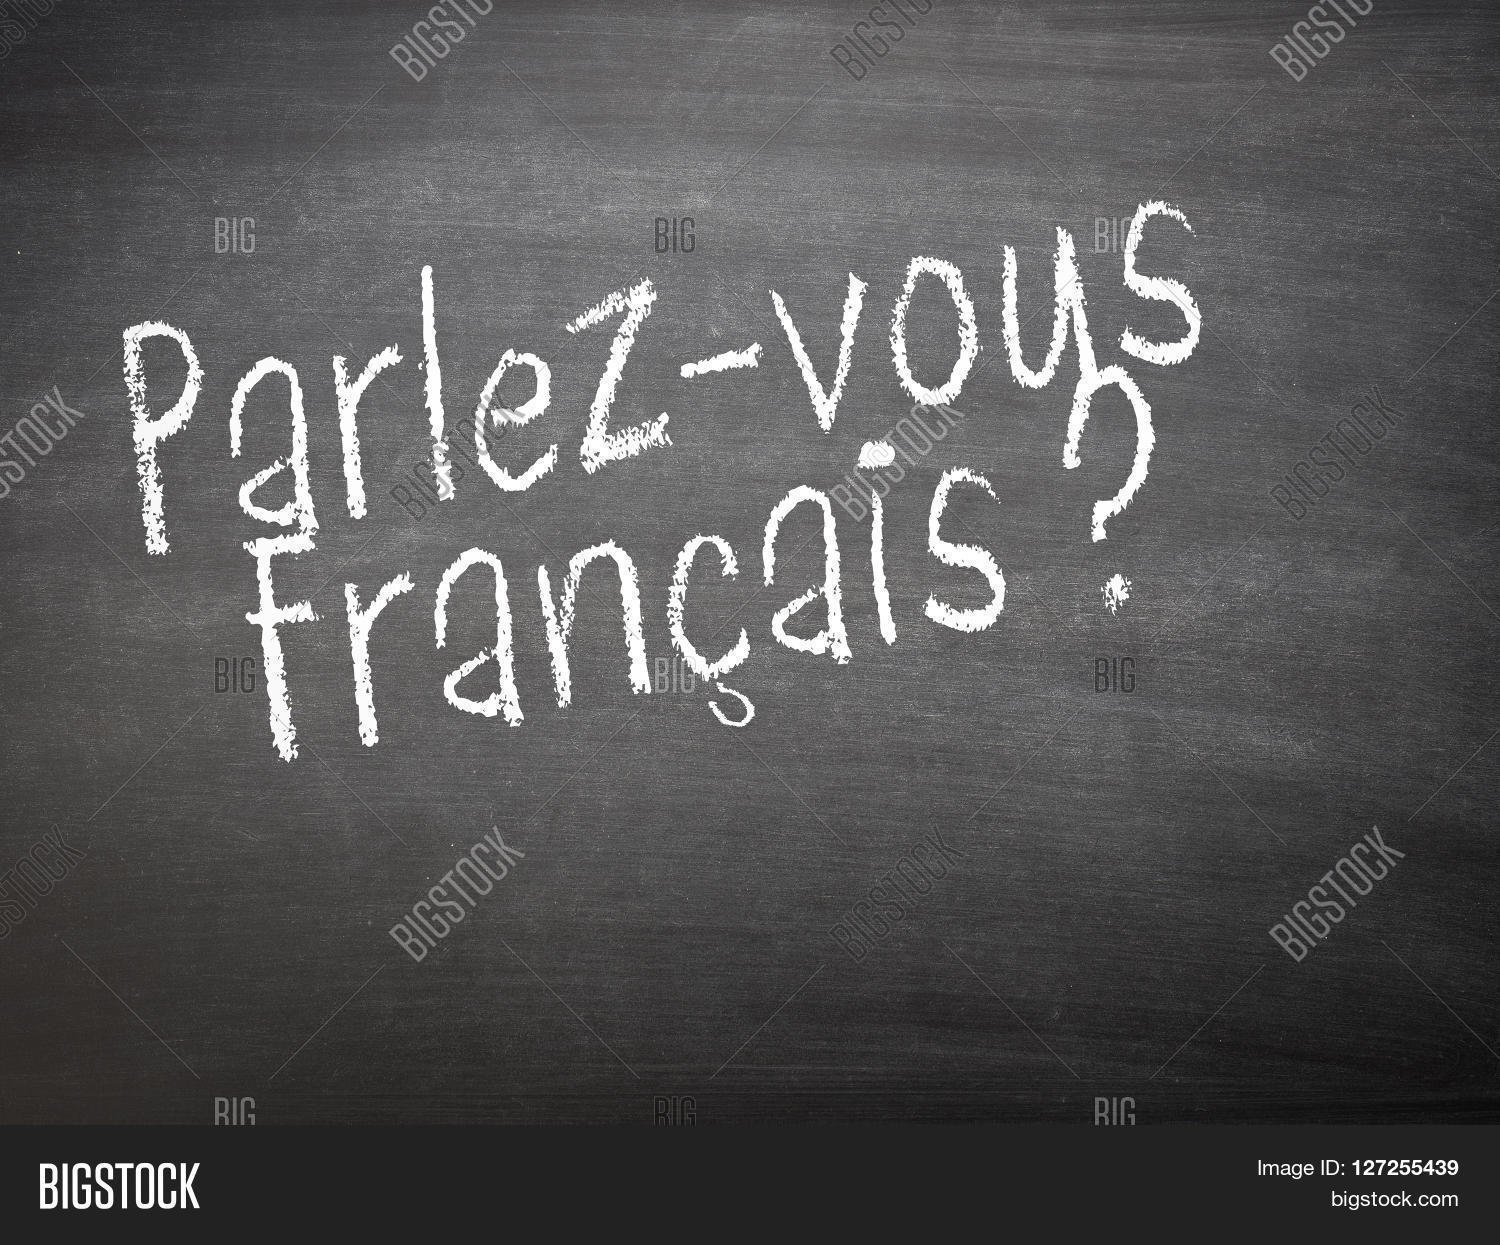 french essay phrases literature Home all levels french french essay phrases french essay phrases hand-picked from all over the internet, these are my pick of the most pretentious, most sophisticated-sounding essay phrases when used sensibly and embellished with decent points about the topic itself.